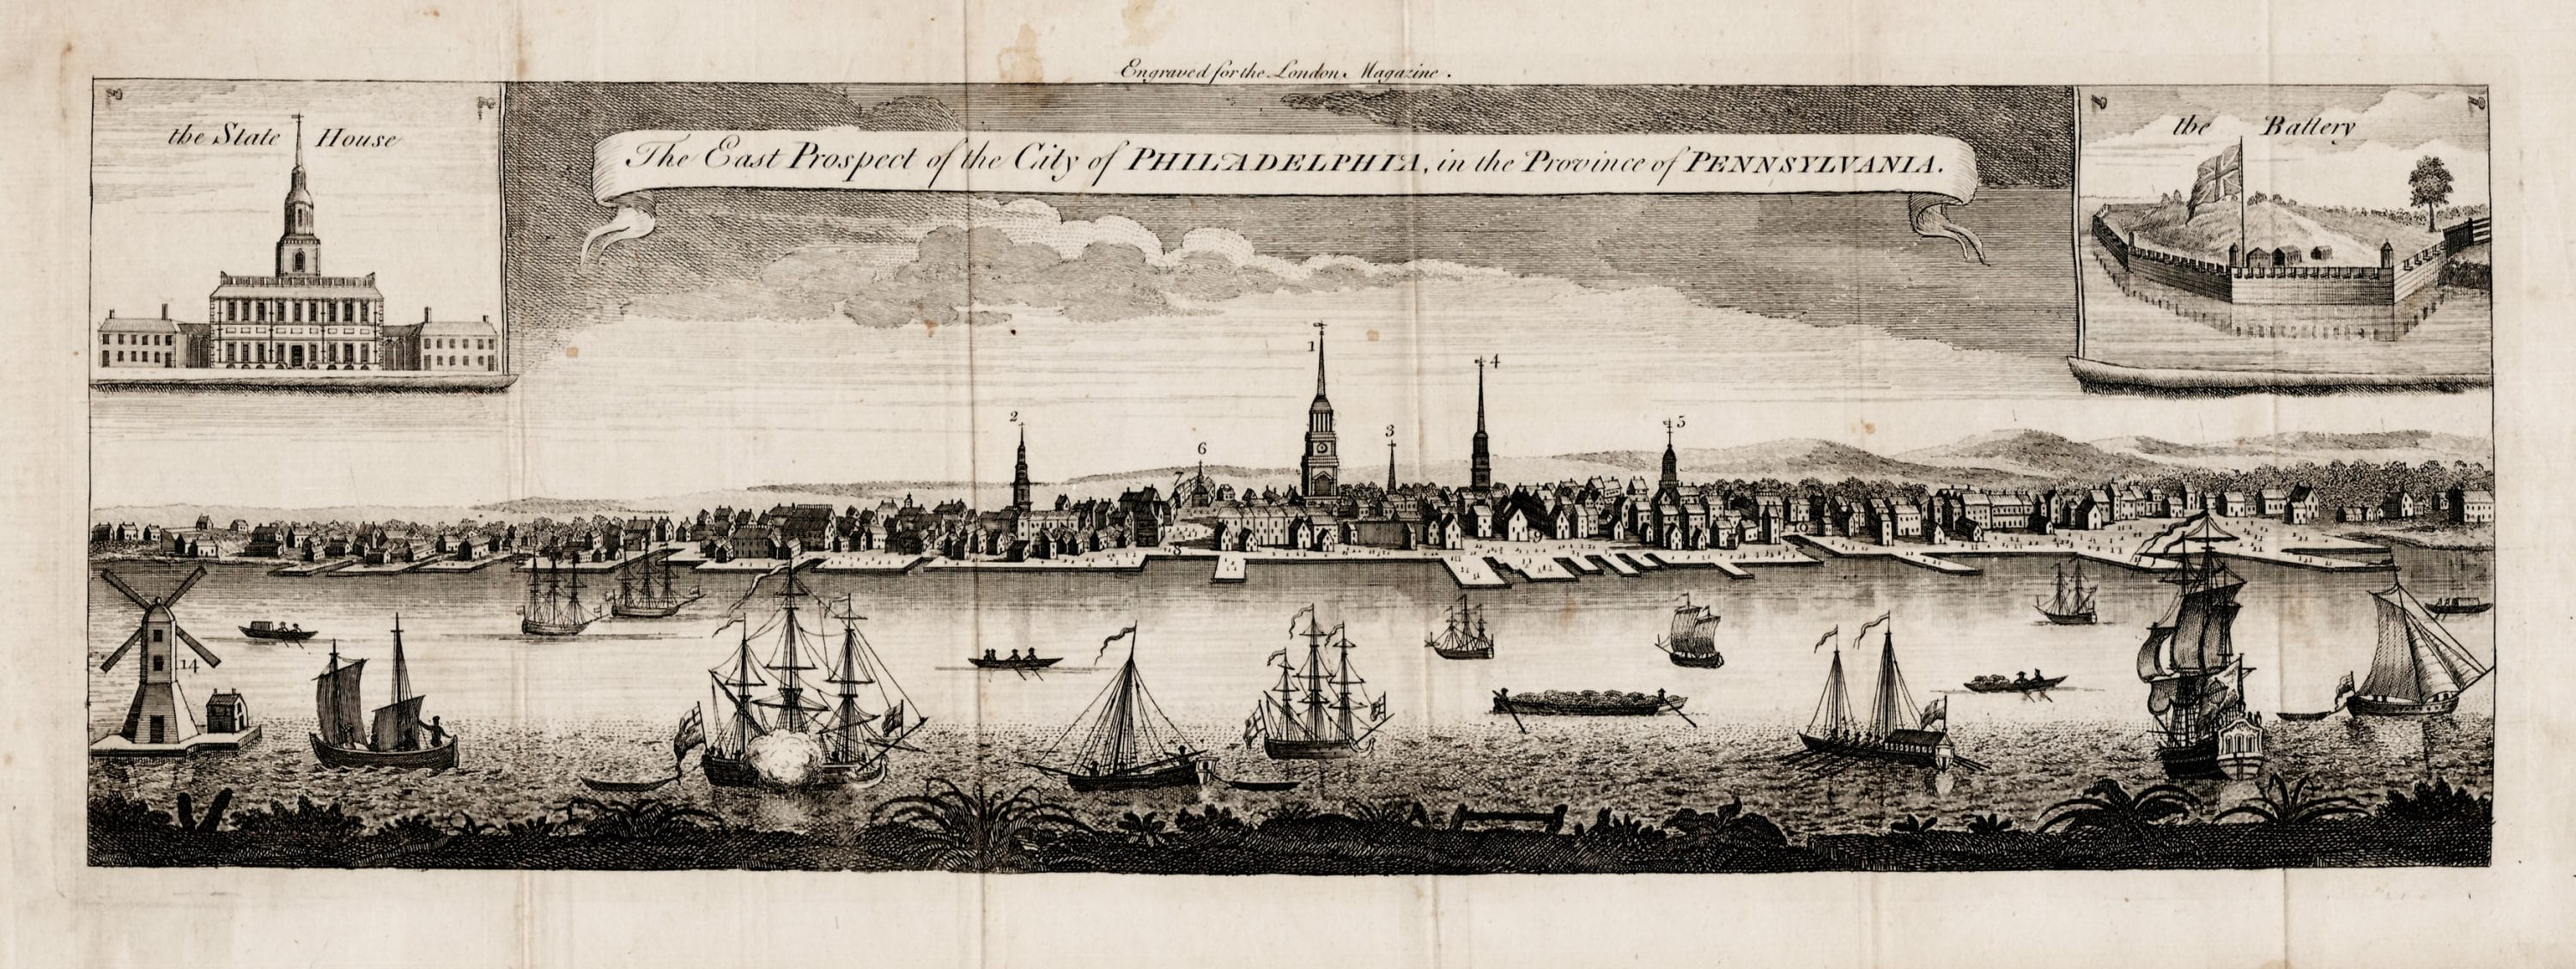 1761 view of Philadelphia based on the George Heap original Rare